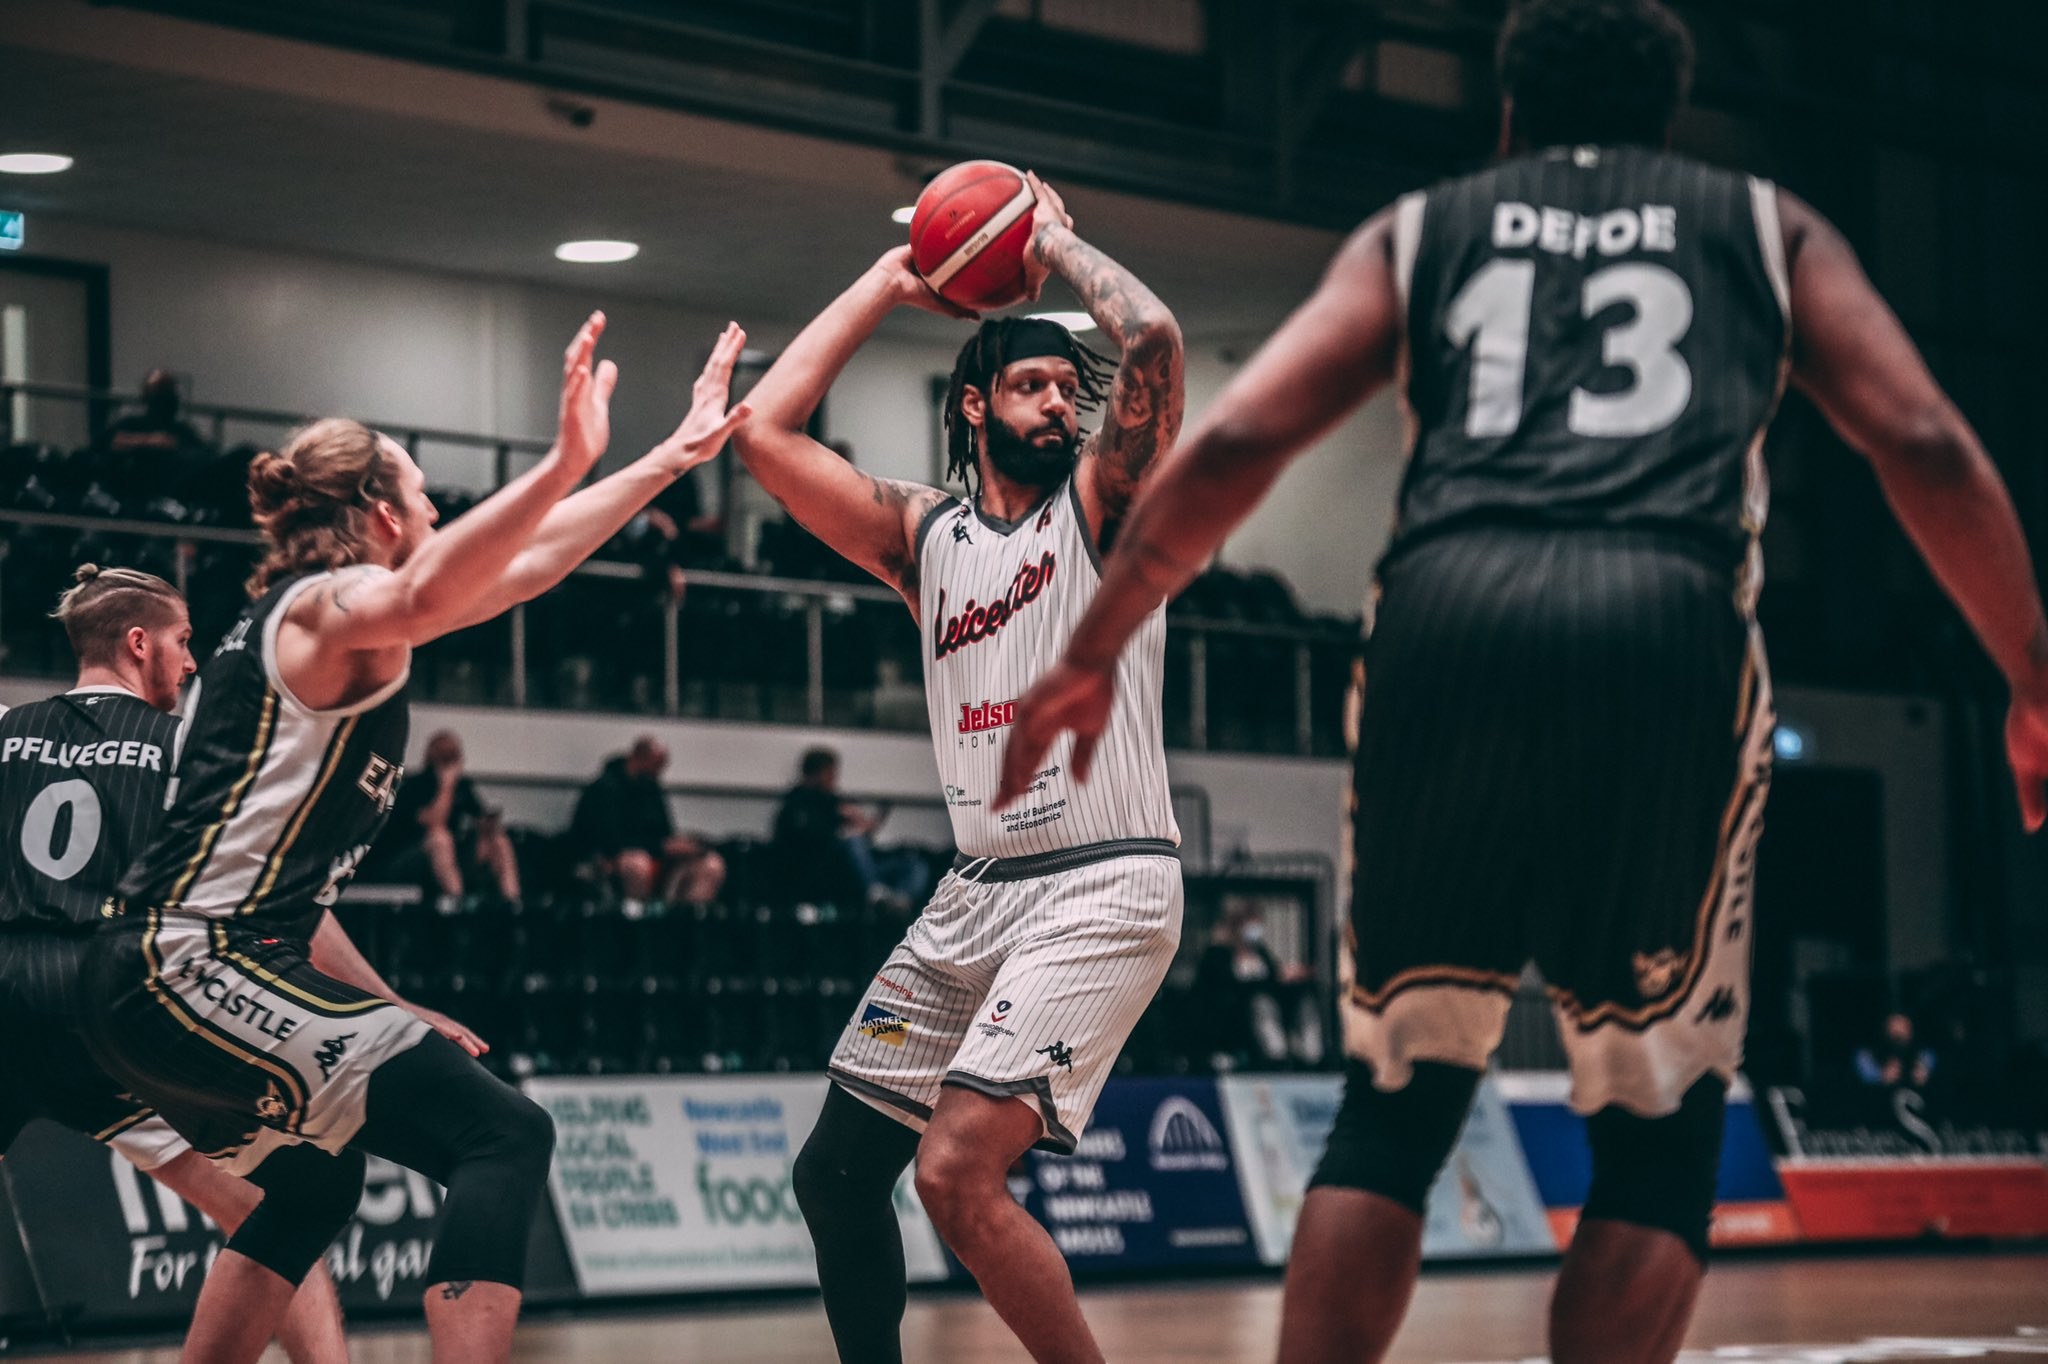 Riders fall to Eagles